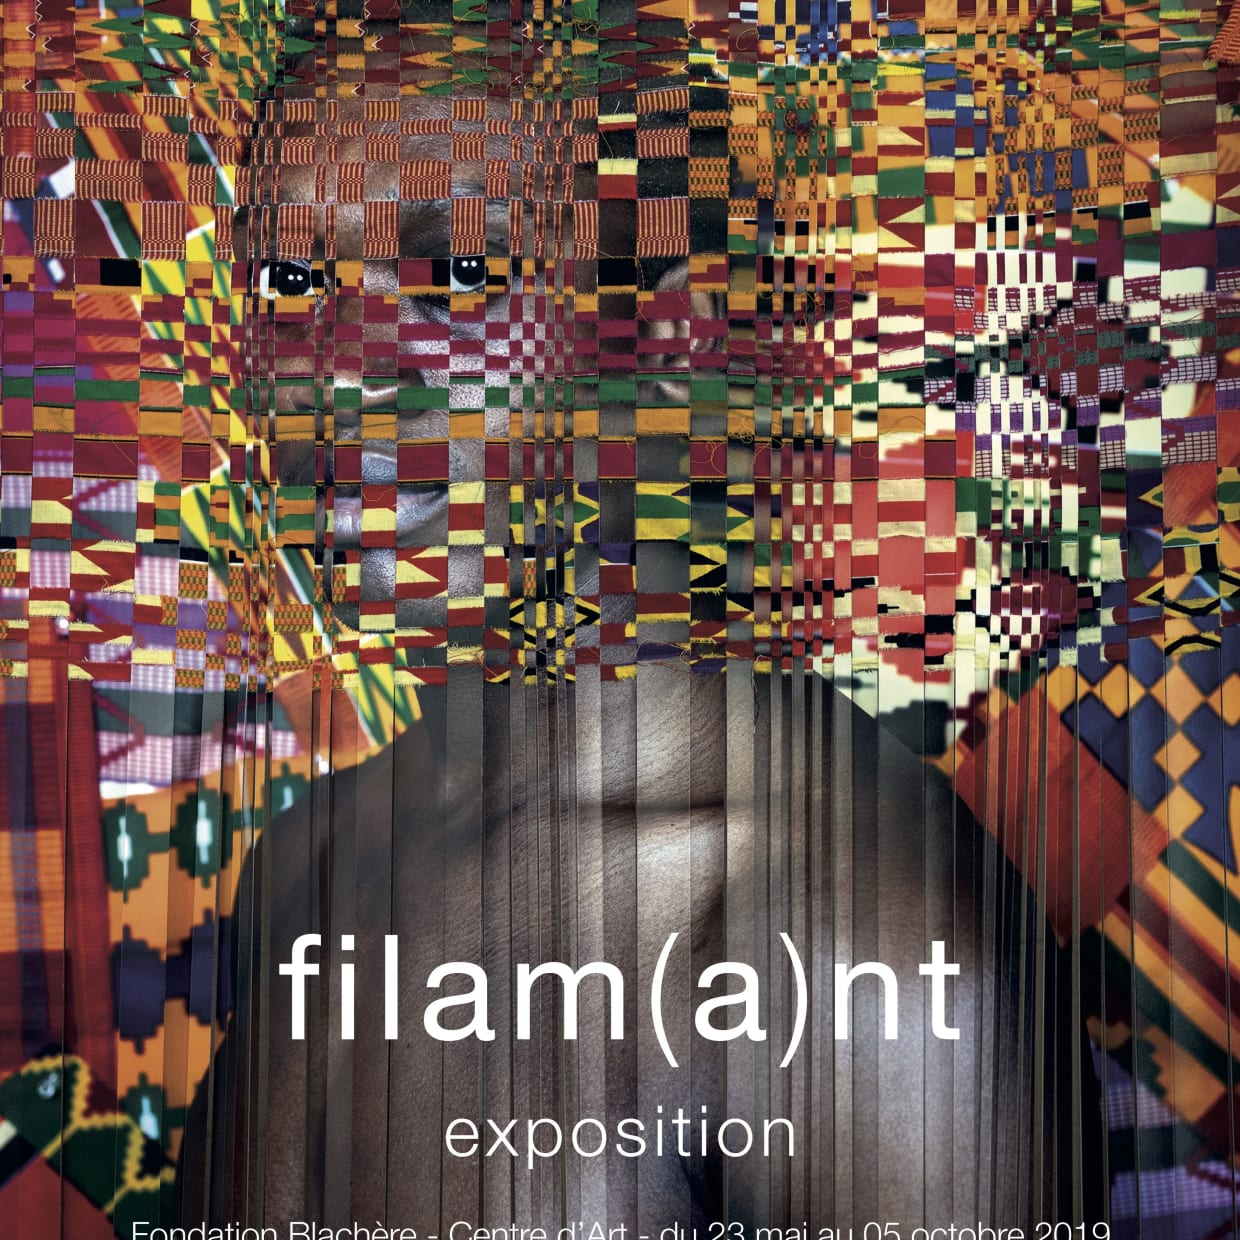 Filam(a)nt Exhibition at Fondation Blachere Art Centre